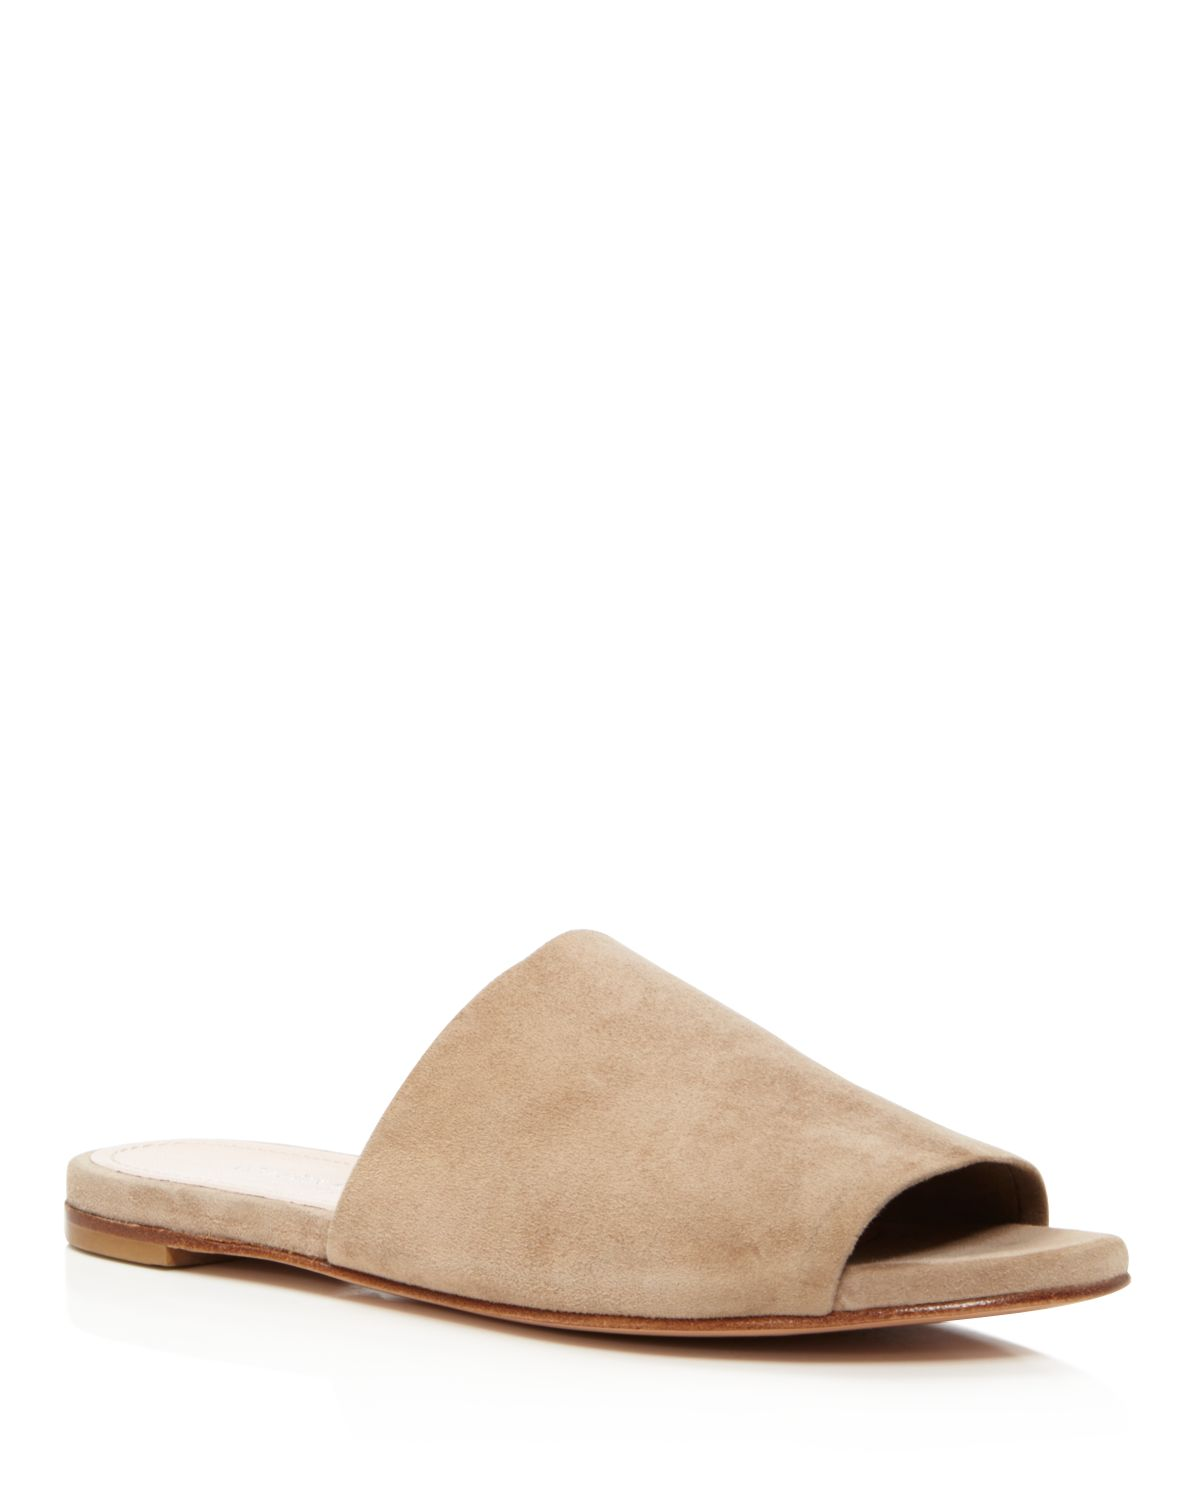 Women's Suede Slide Sandals by Charles David